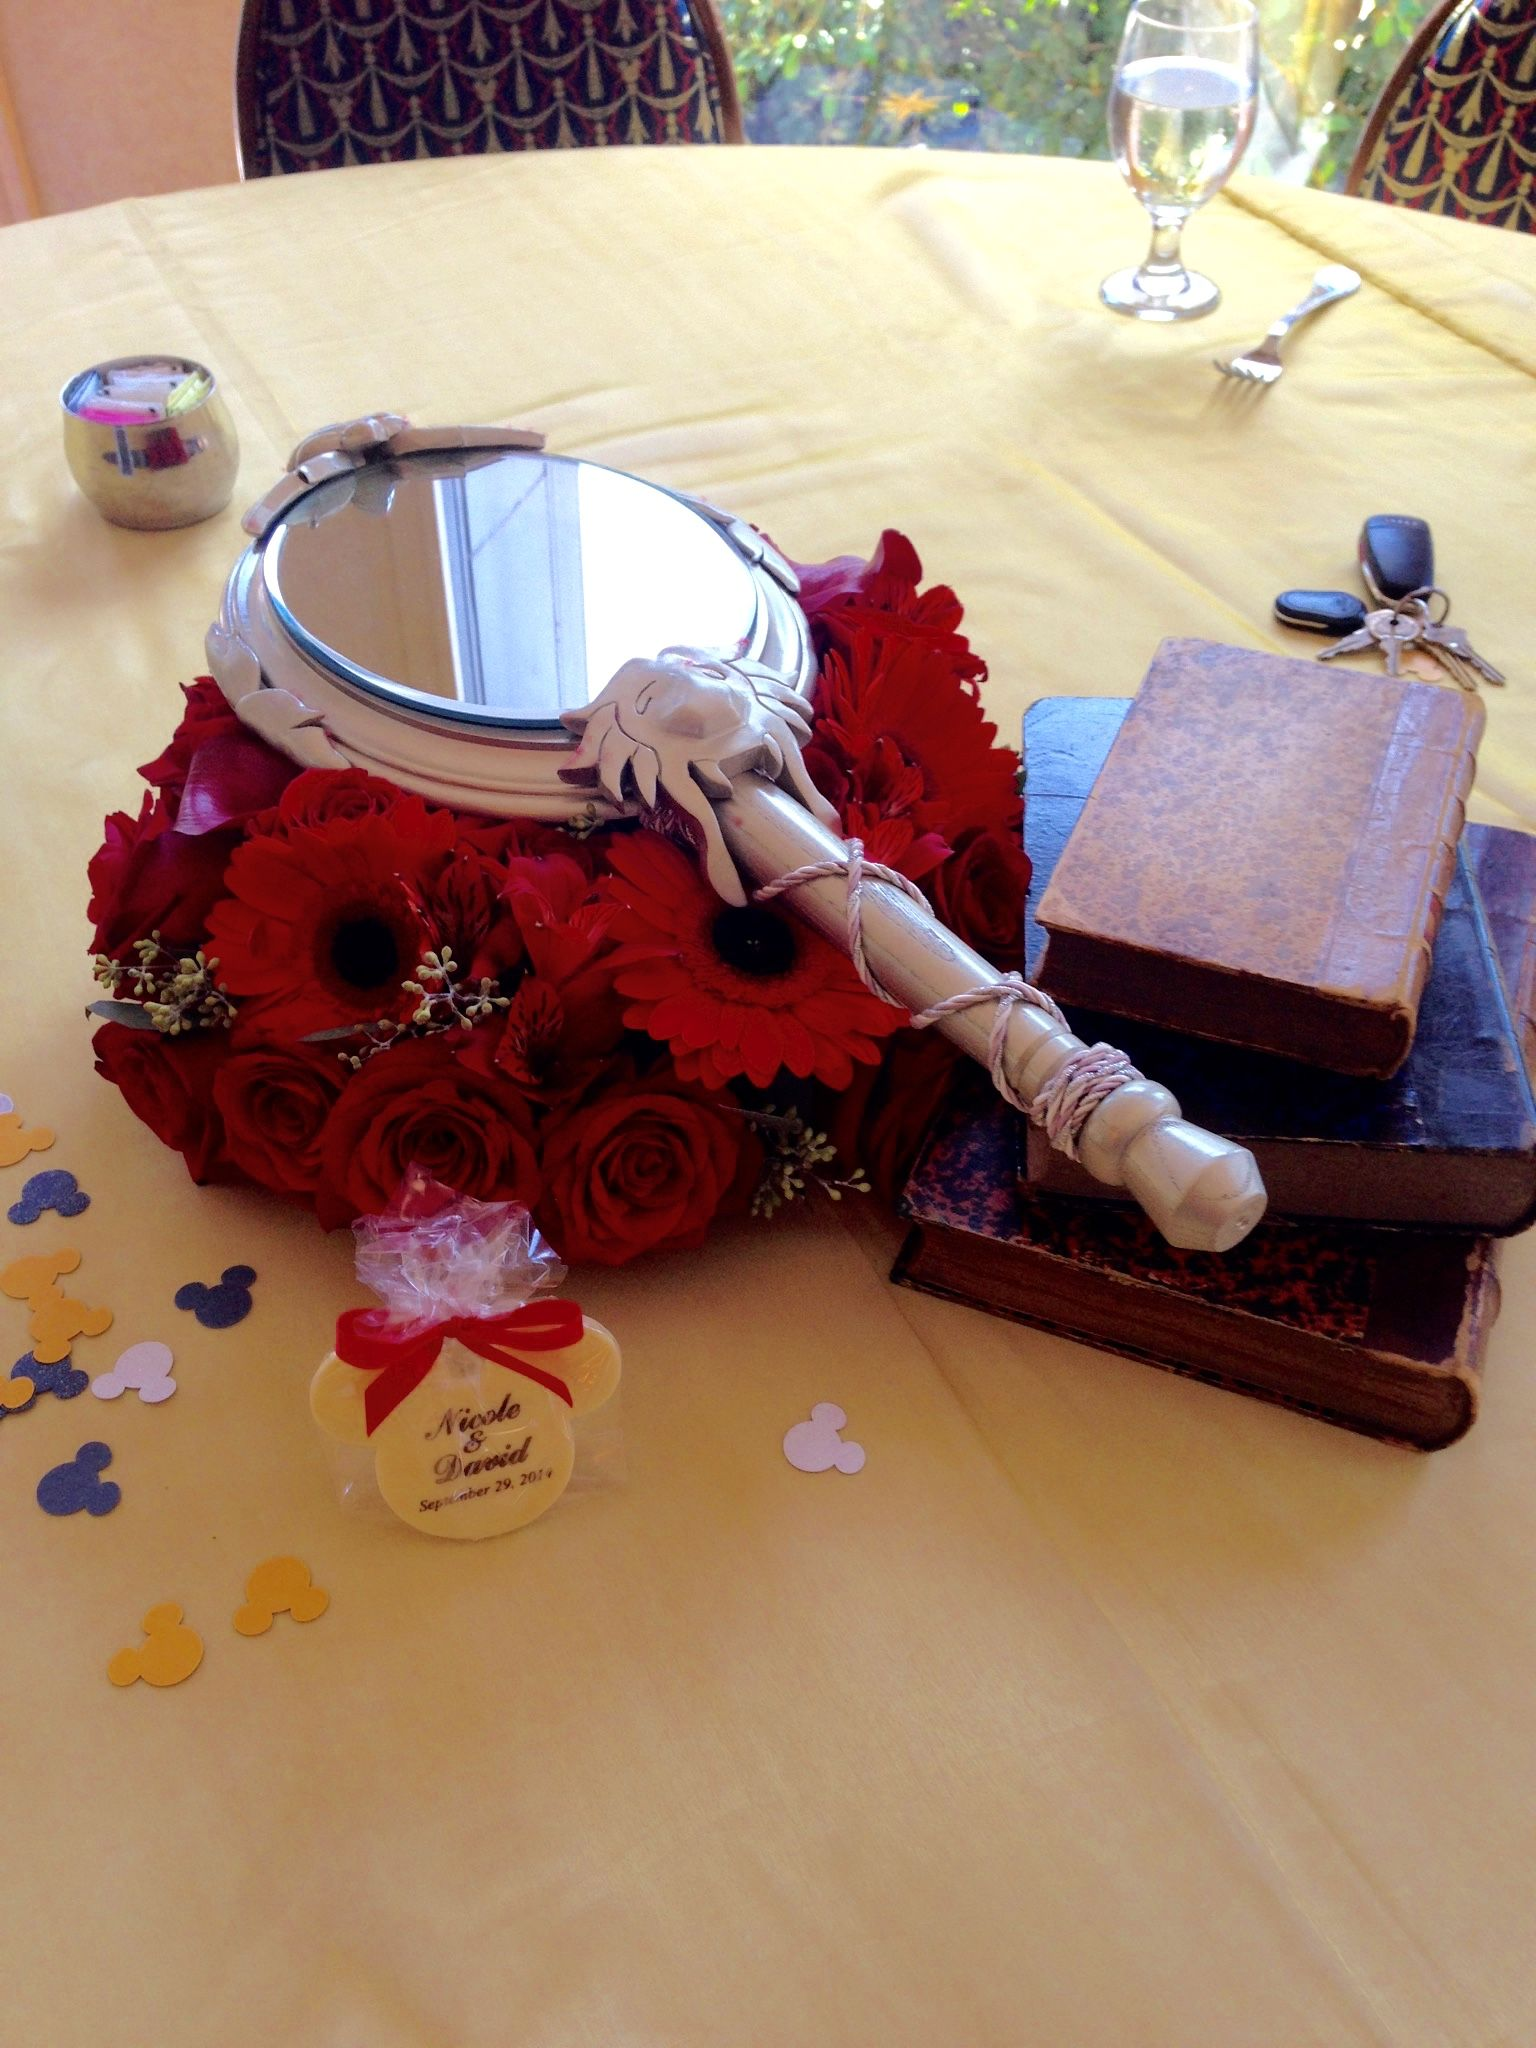 Disney beauty and the beast enchanted mirror and books for Disney themed wedding centerpieces